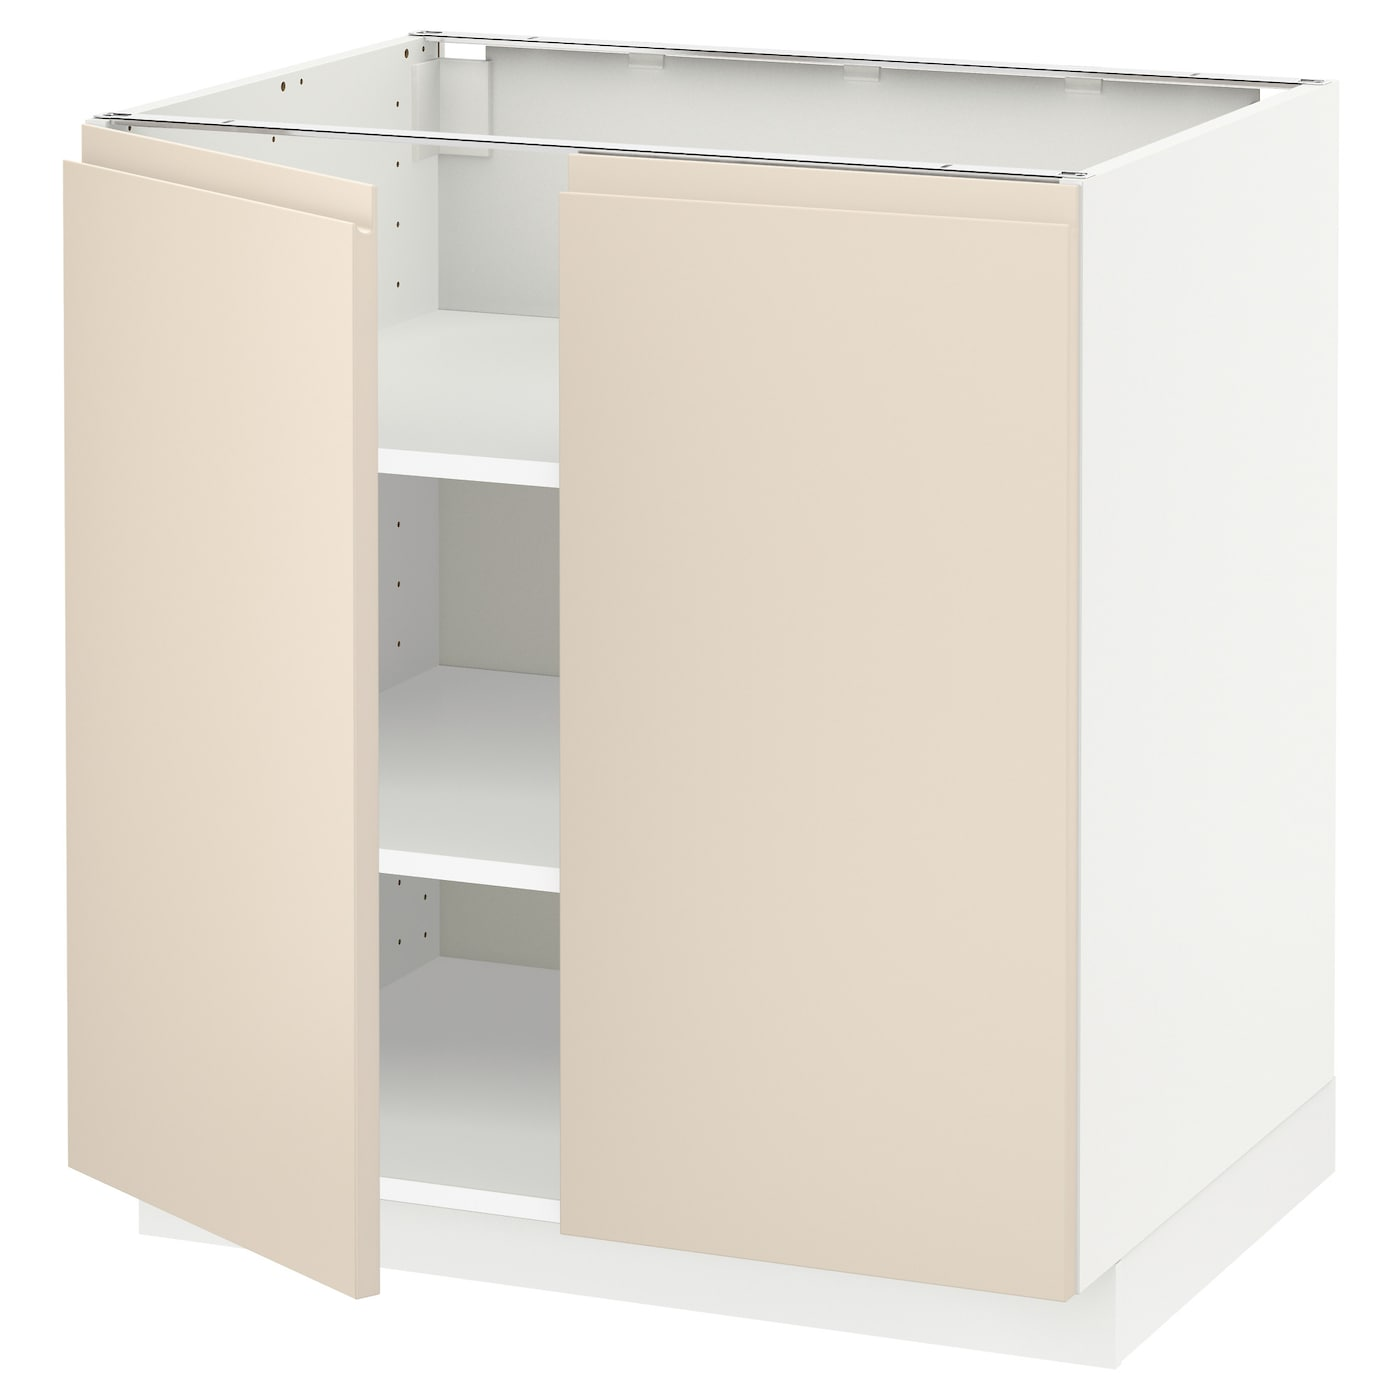 metod base cabinet with shelves 2 doors white voxtorp light beige 80x60 cm ikea. Black Bedroom Furniture Sets. Home Design Ideas